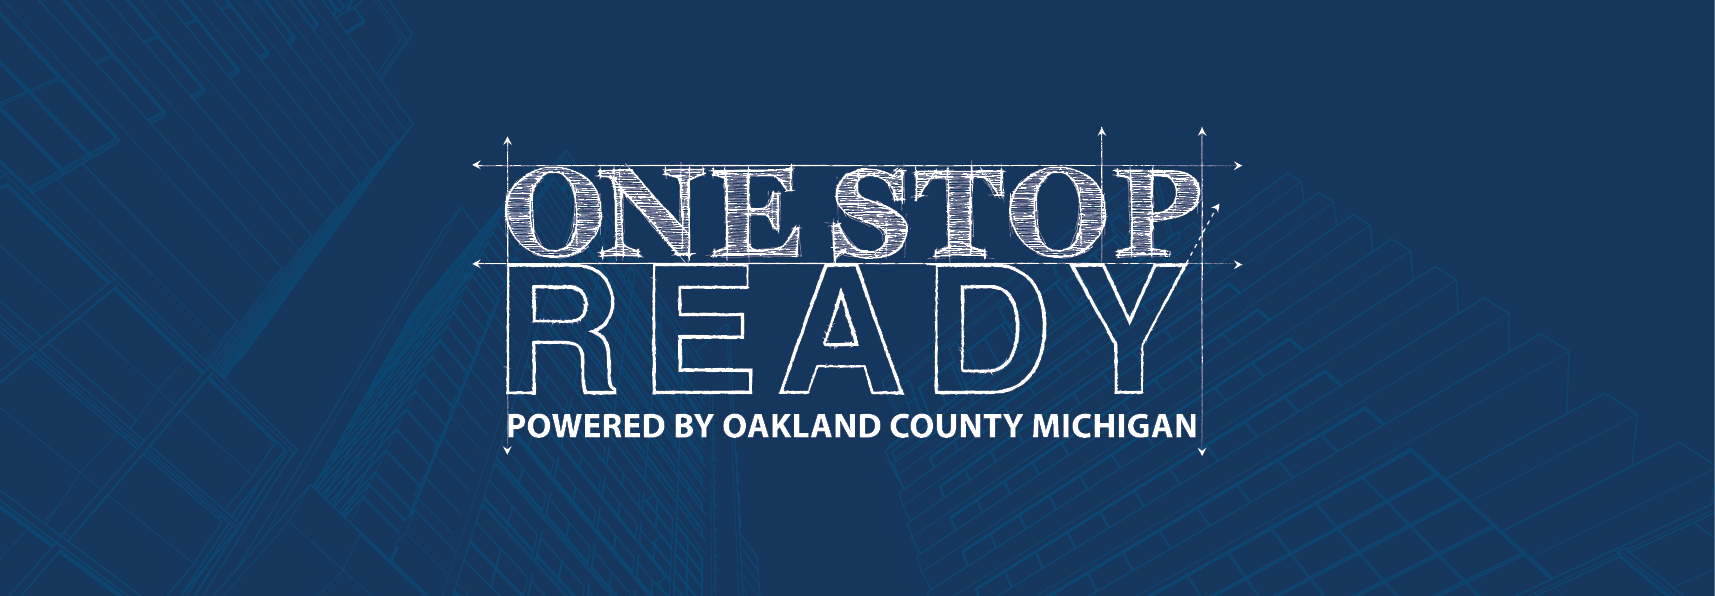 One Stop Ready